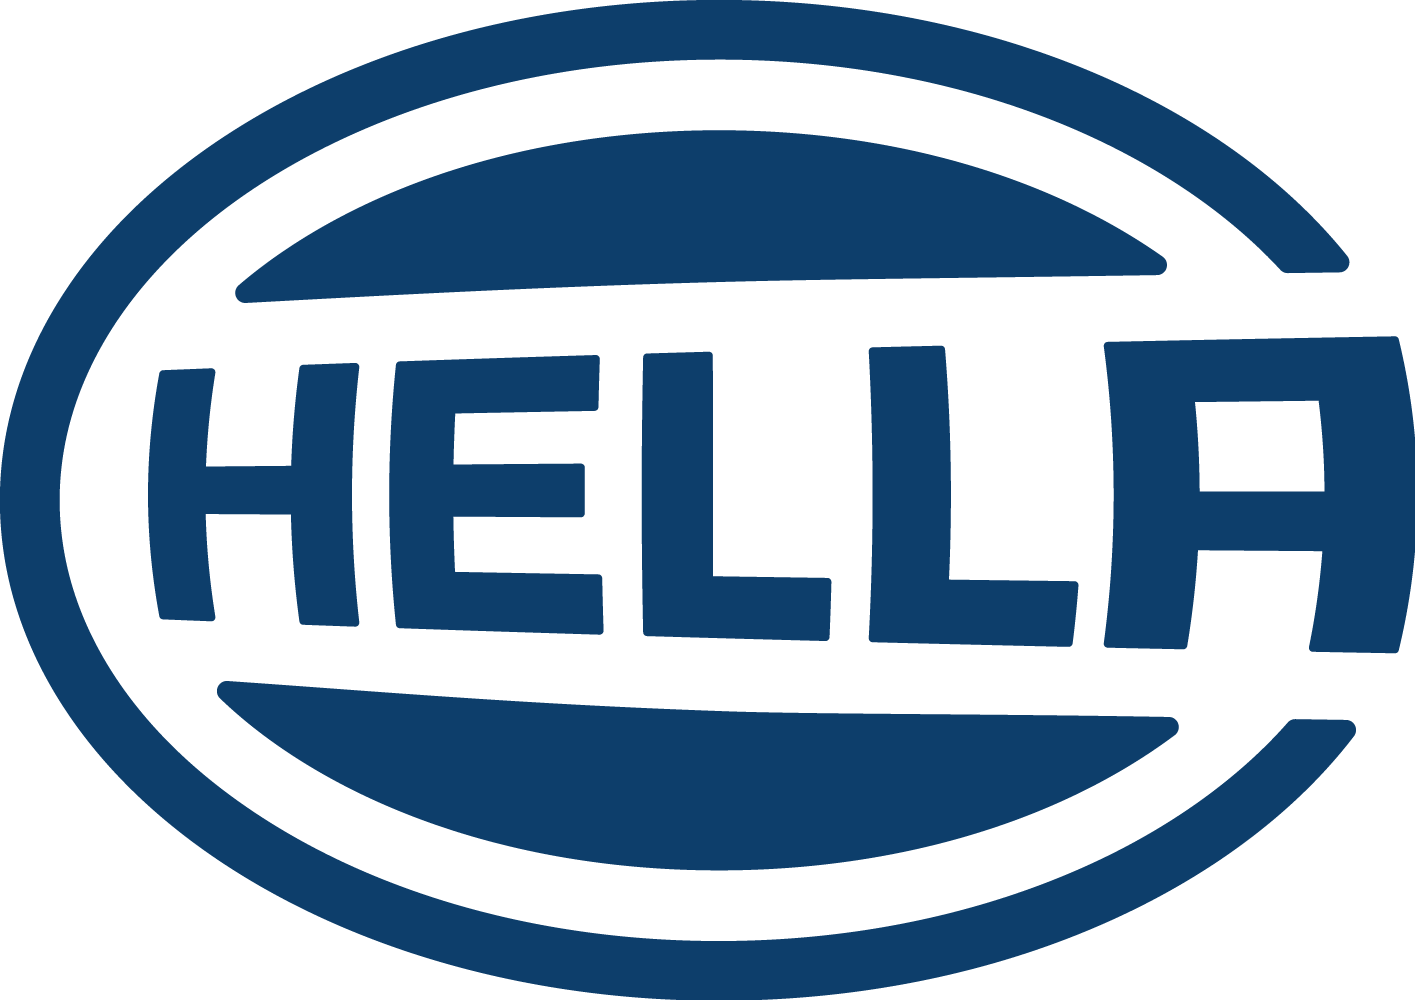 Hella Interior Lighting Systems GmbH Logo